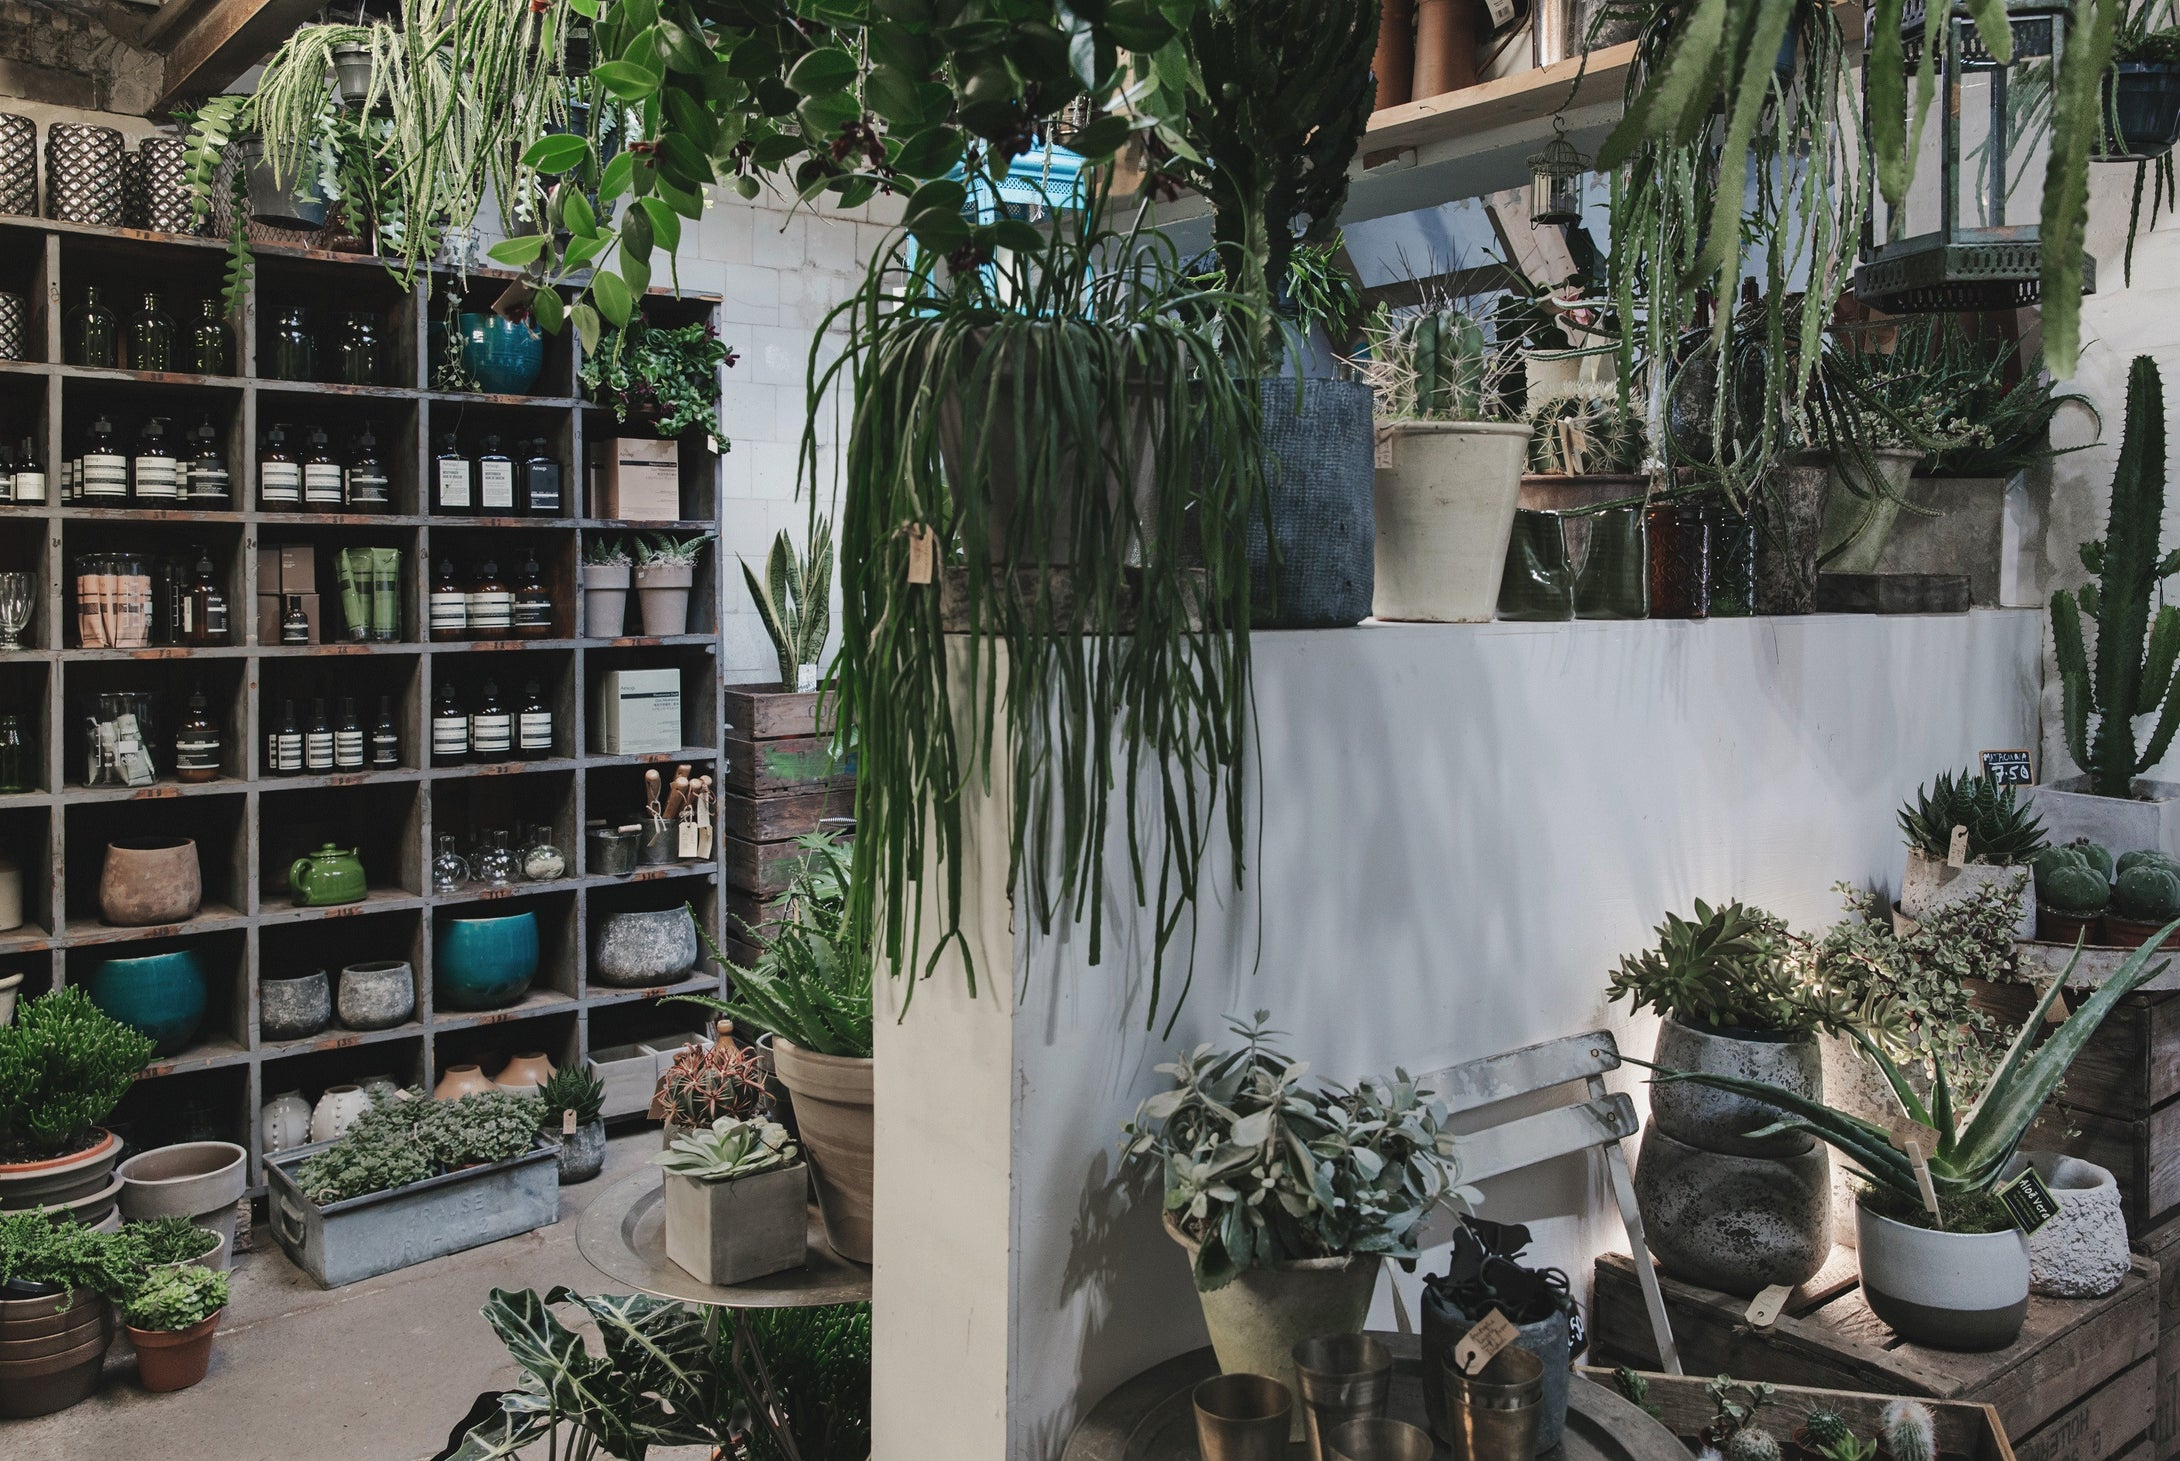 Come and visit us in store in East Dulwich or Deptford and discover the joy plants can bring to your home.